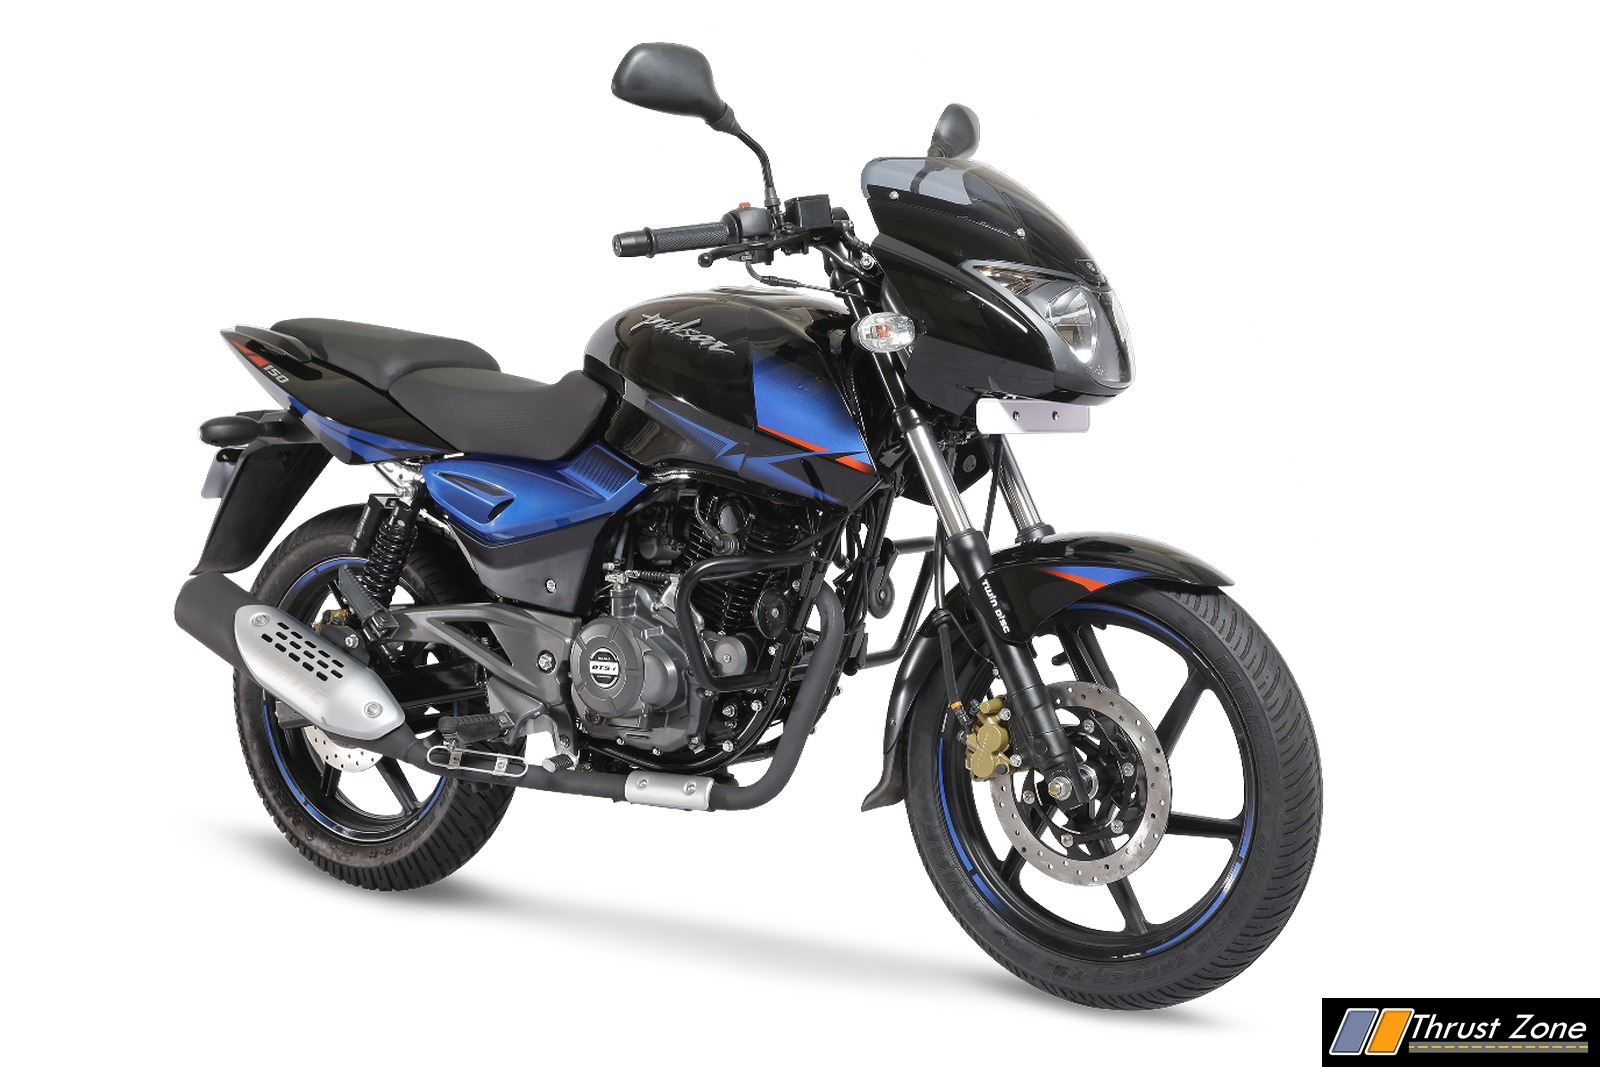 New Pulsar 150 Facelift 2018 Model Launched Price Specs